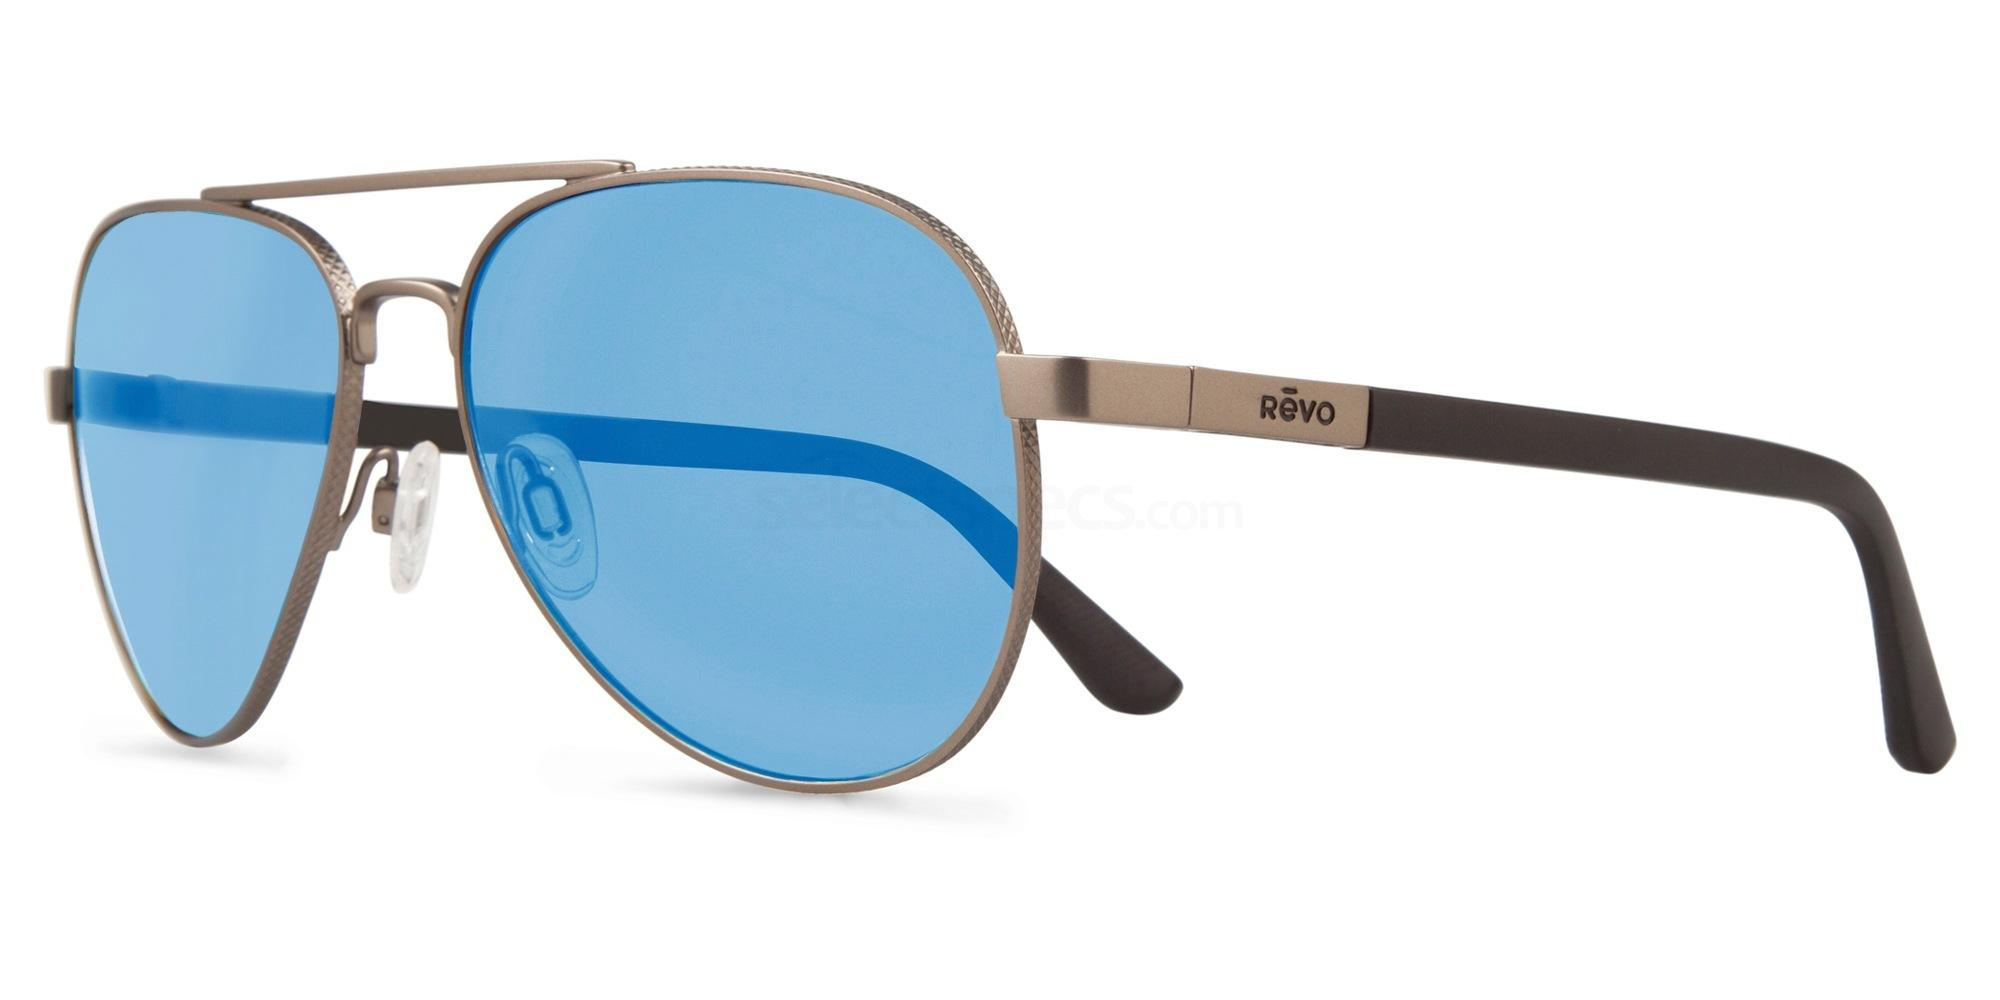 Revo Raconteur - RE1011 sunglasses